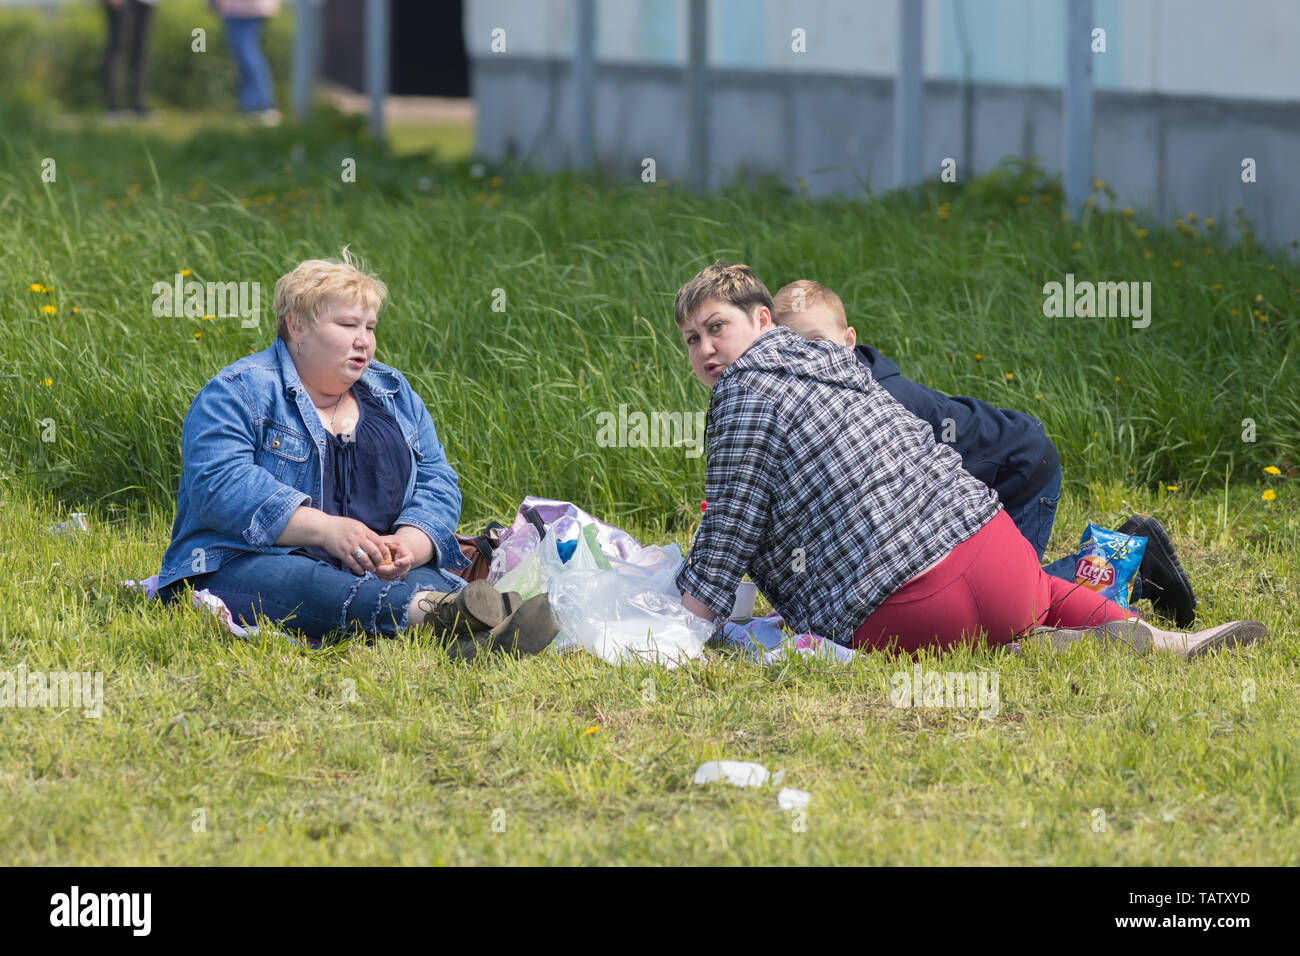 RUSSIA, Nikolskoe village, Republic of Tatarstan 25-05-2019: Three mature overweight women sitting on the blanket in a village and having a picnic. An Stock Photo